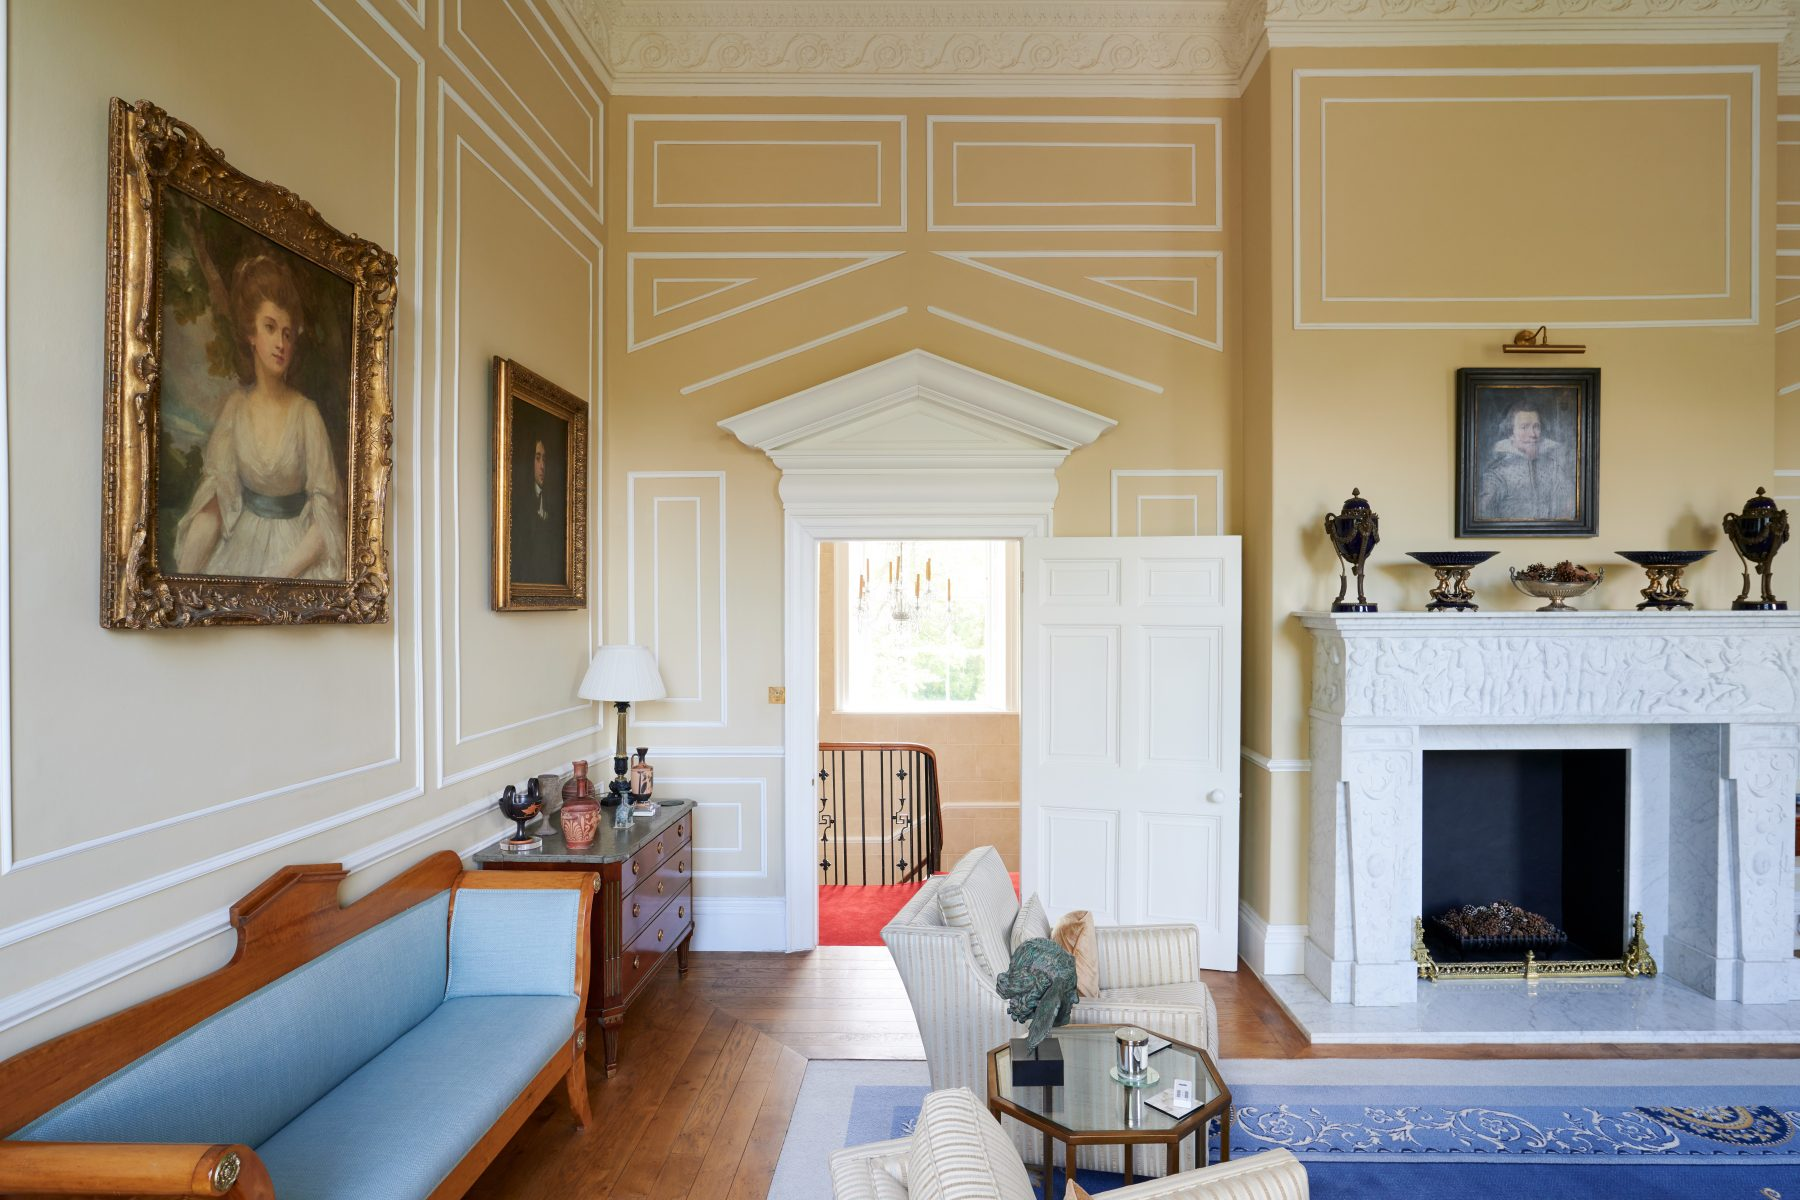 Bespoke wall panelling in keeping with the period and scale of the property